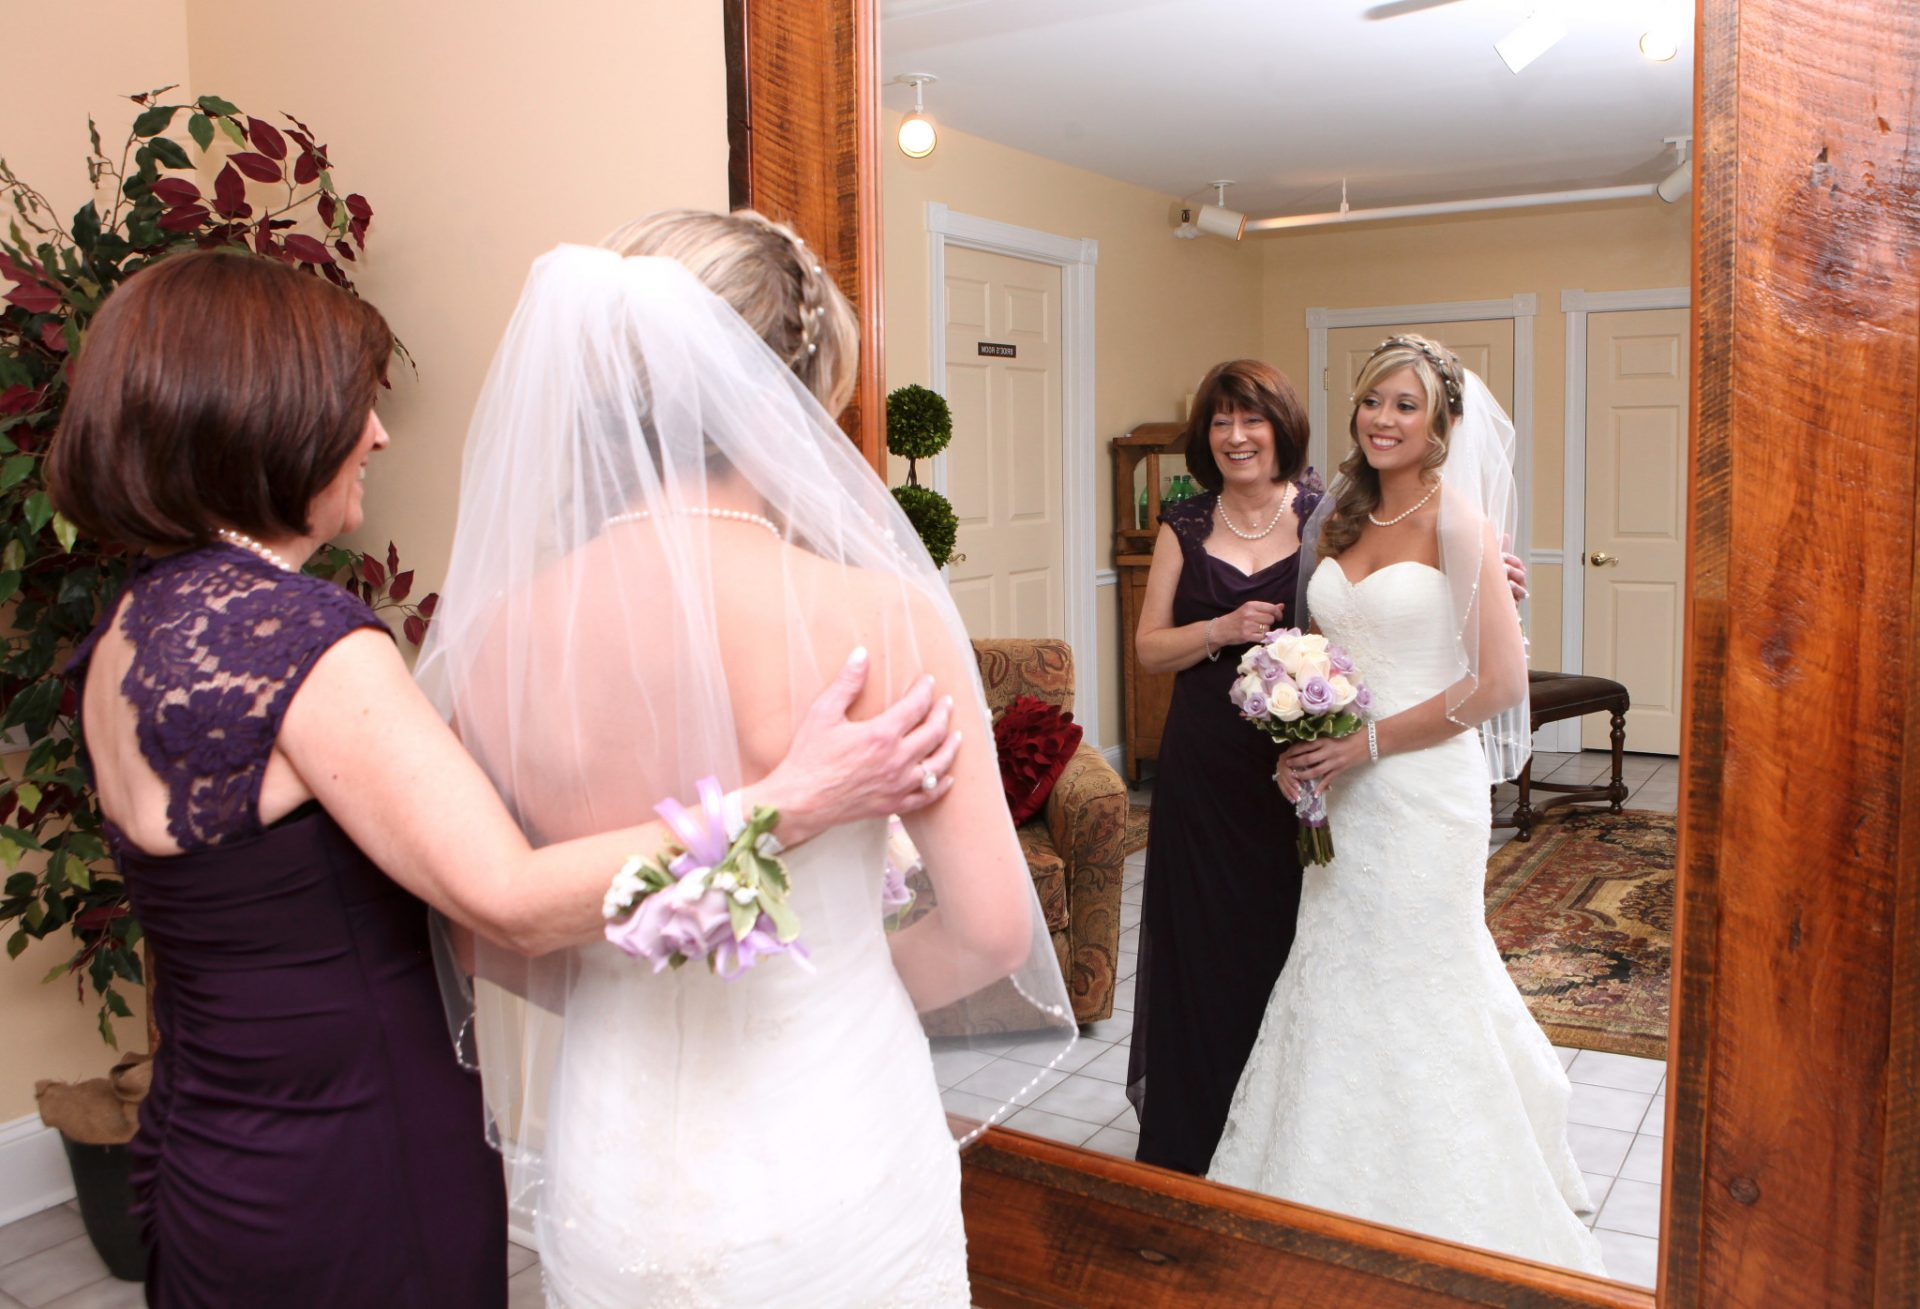 Bride and mother of bride embrace in front of large mirror in the bride's room